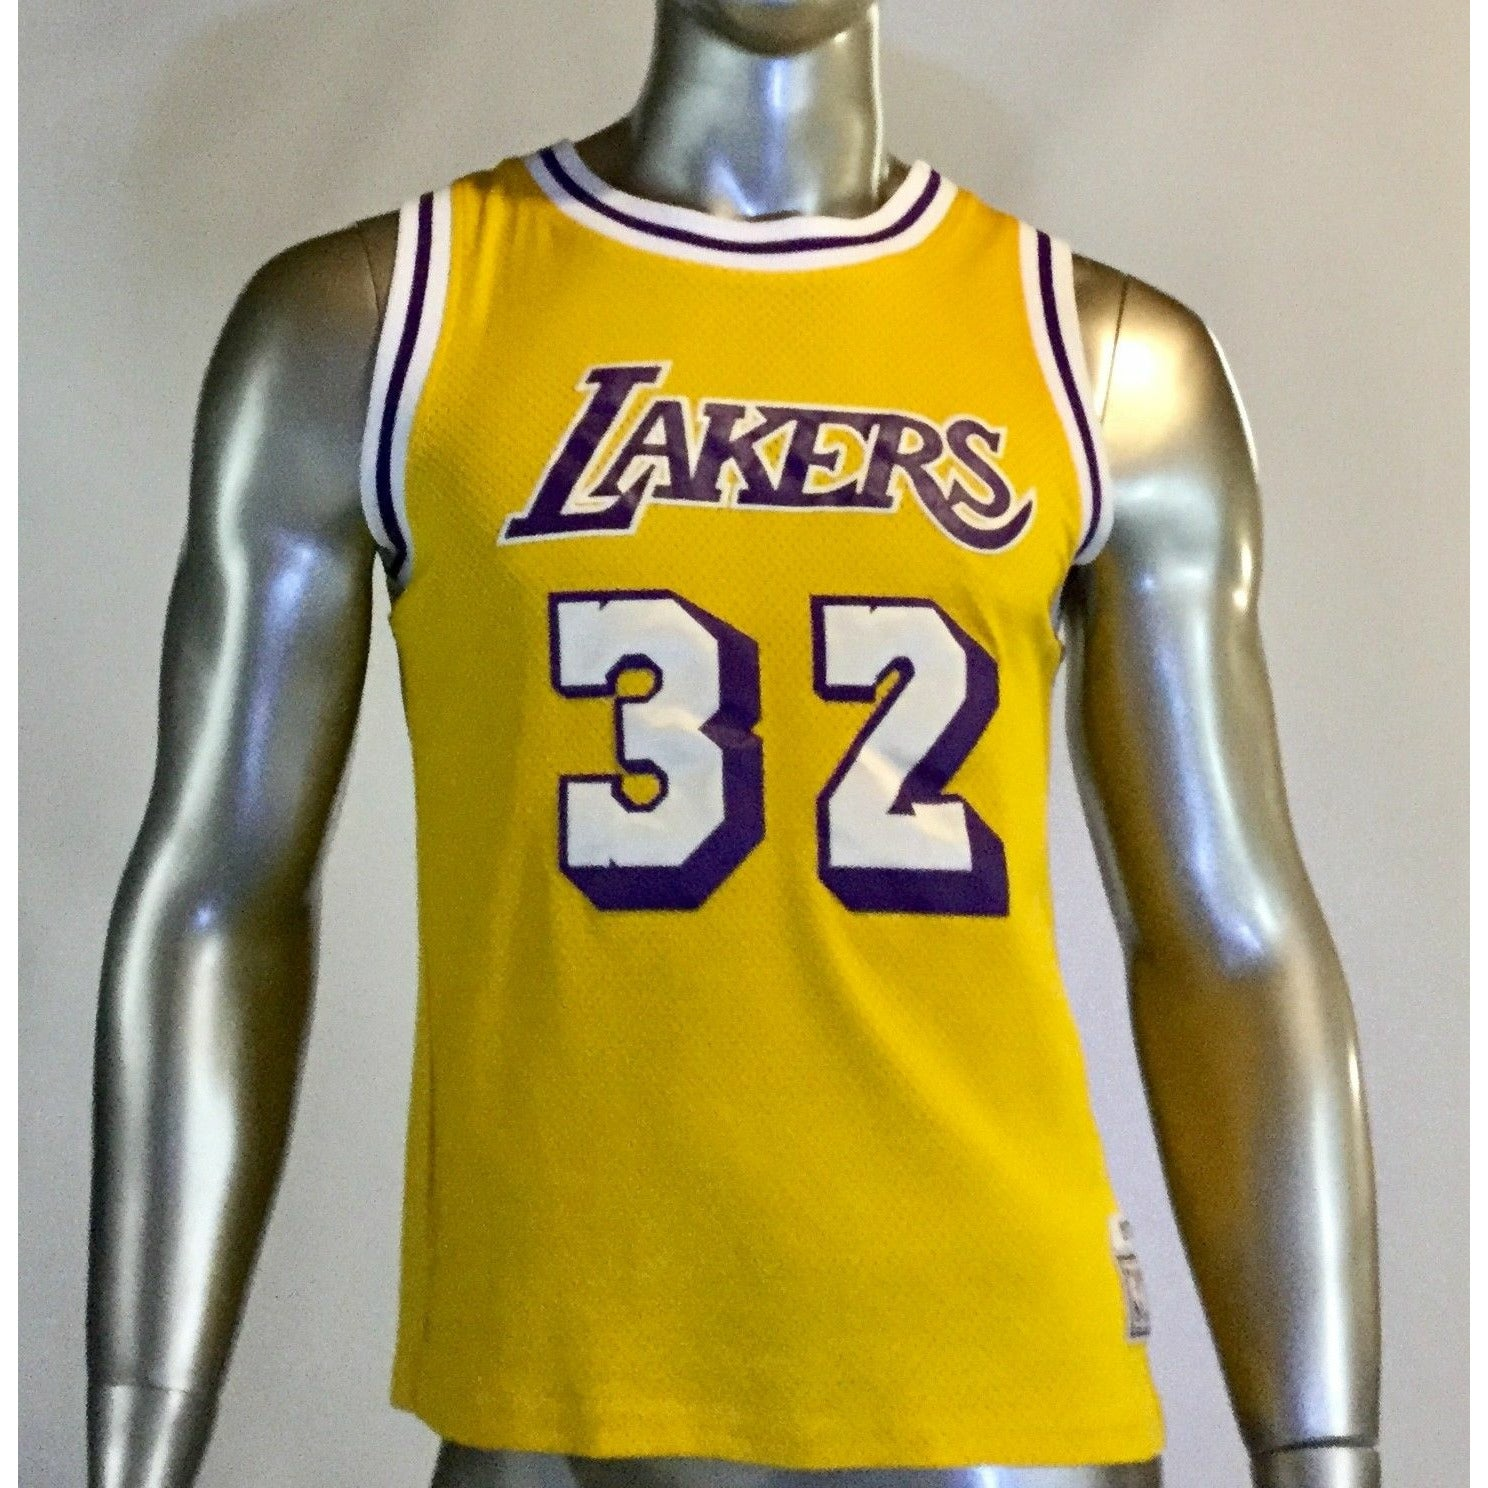 NBA Hardwood Classics VINTAGE Lakers #32 MAGIC JOHNSON JERSEY 1979-80 Size L